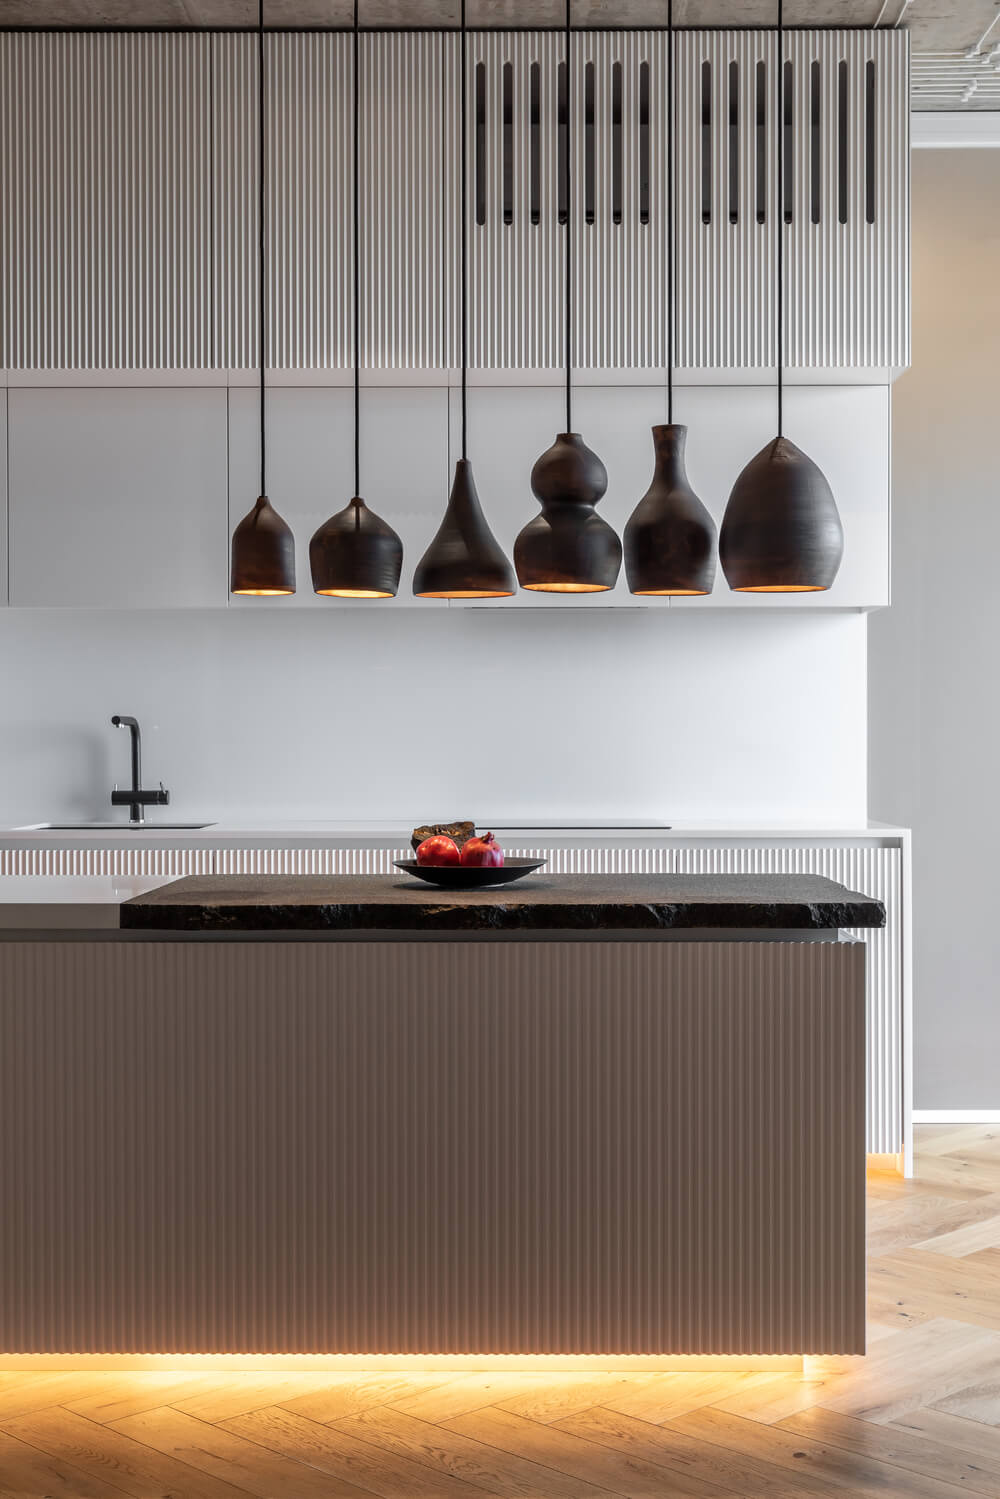 This close view of the edge of the kitchen island showcases more of the thick rough cut countertop and the different shapes of the pendant lights.